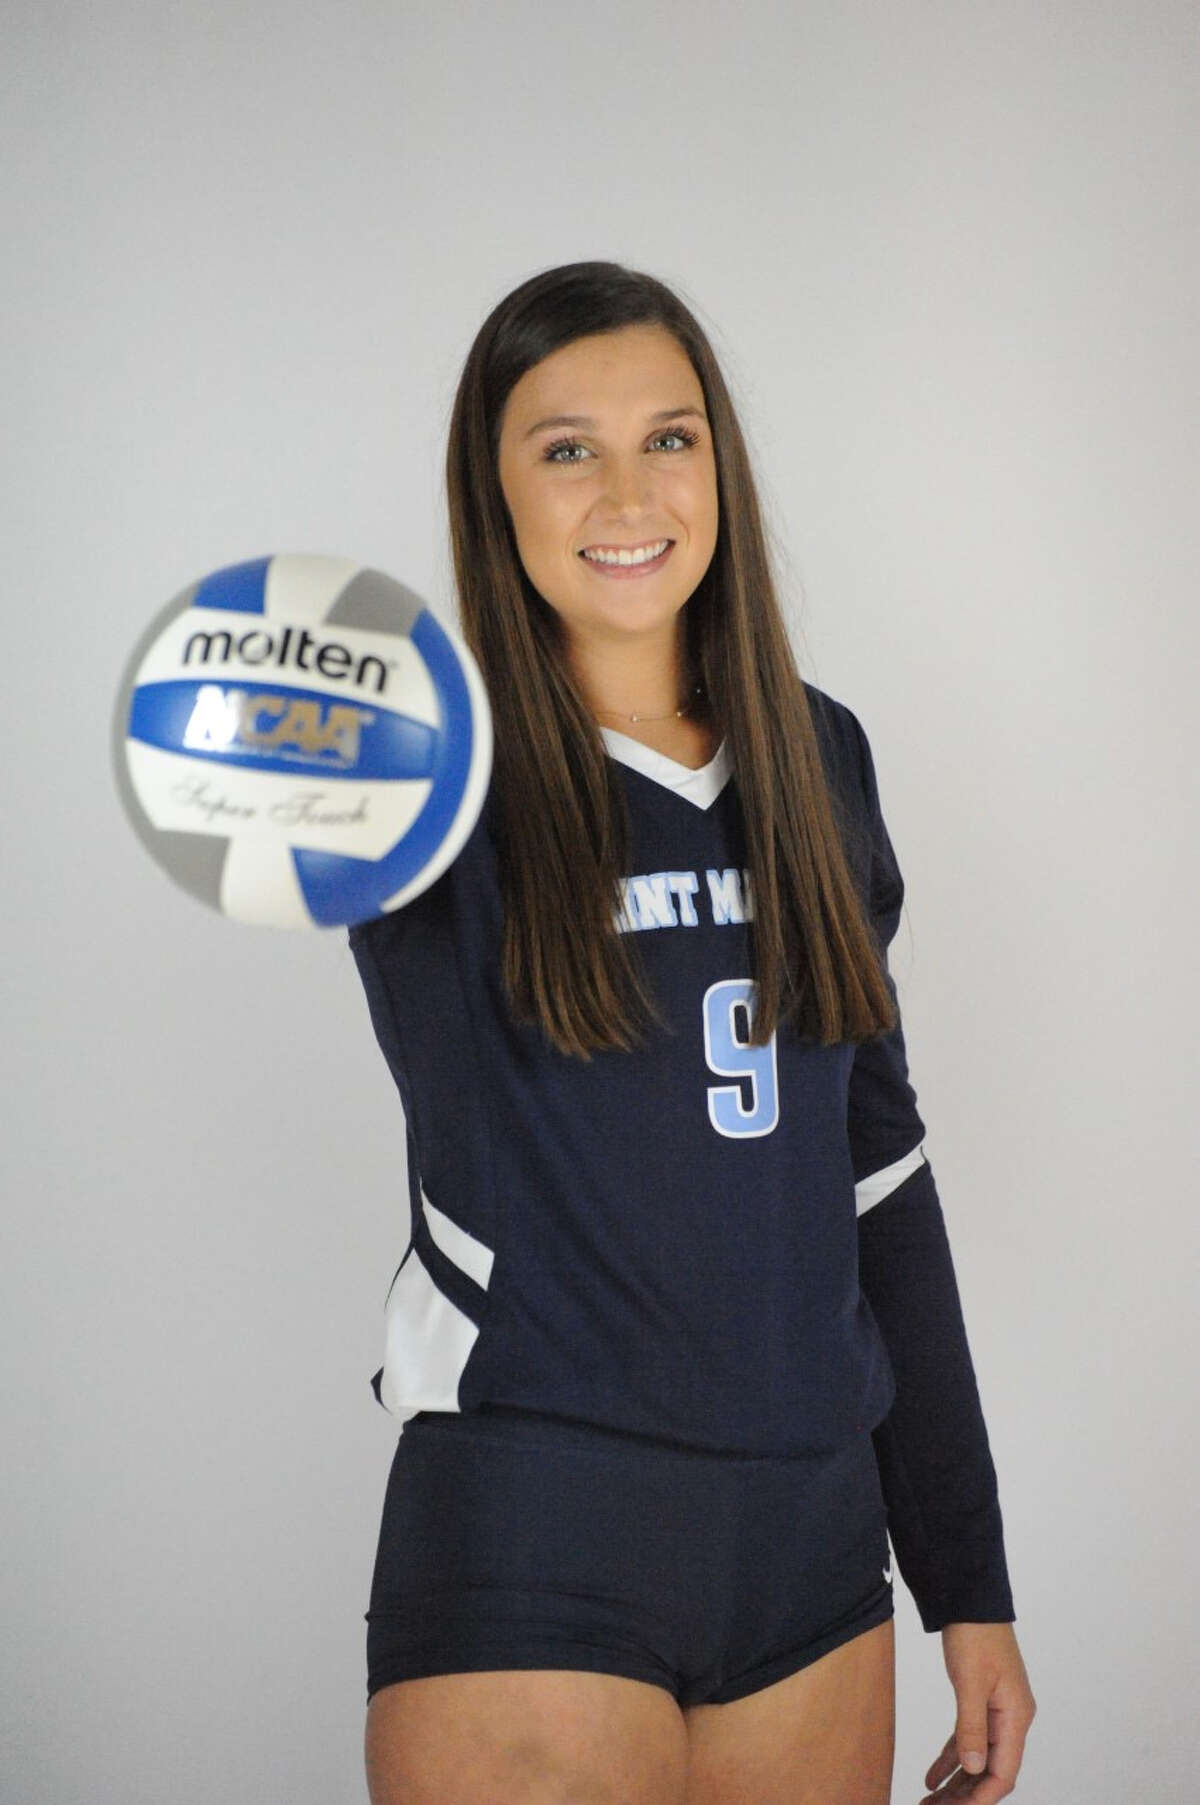 Former Onekama volleyball player Colleen McCarthy is thriving at Saint Mary's College.